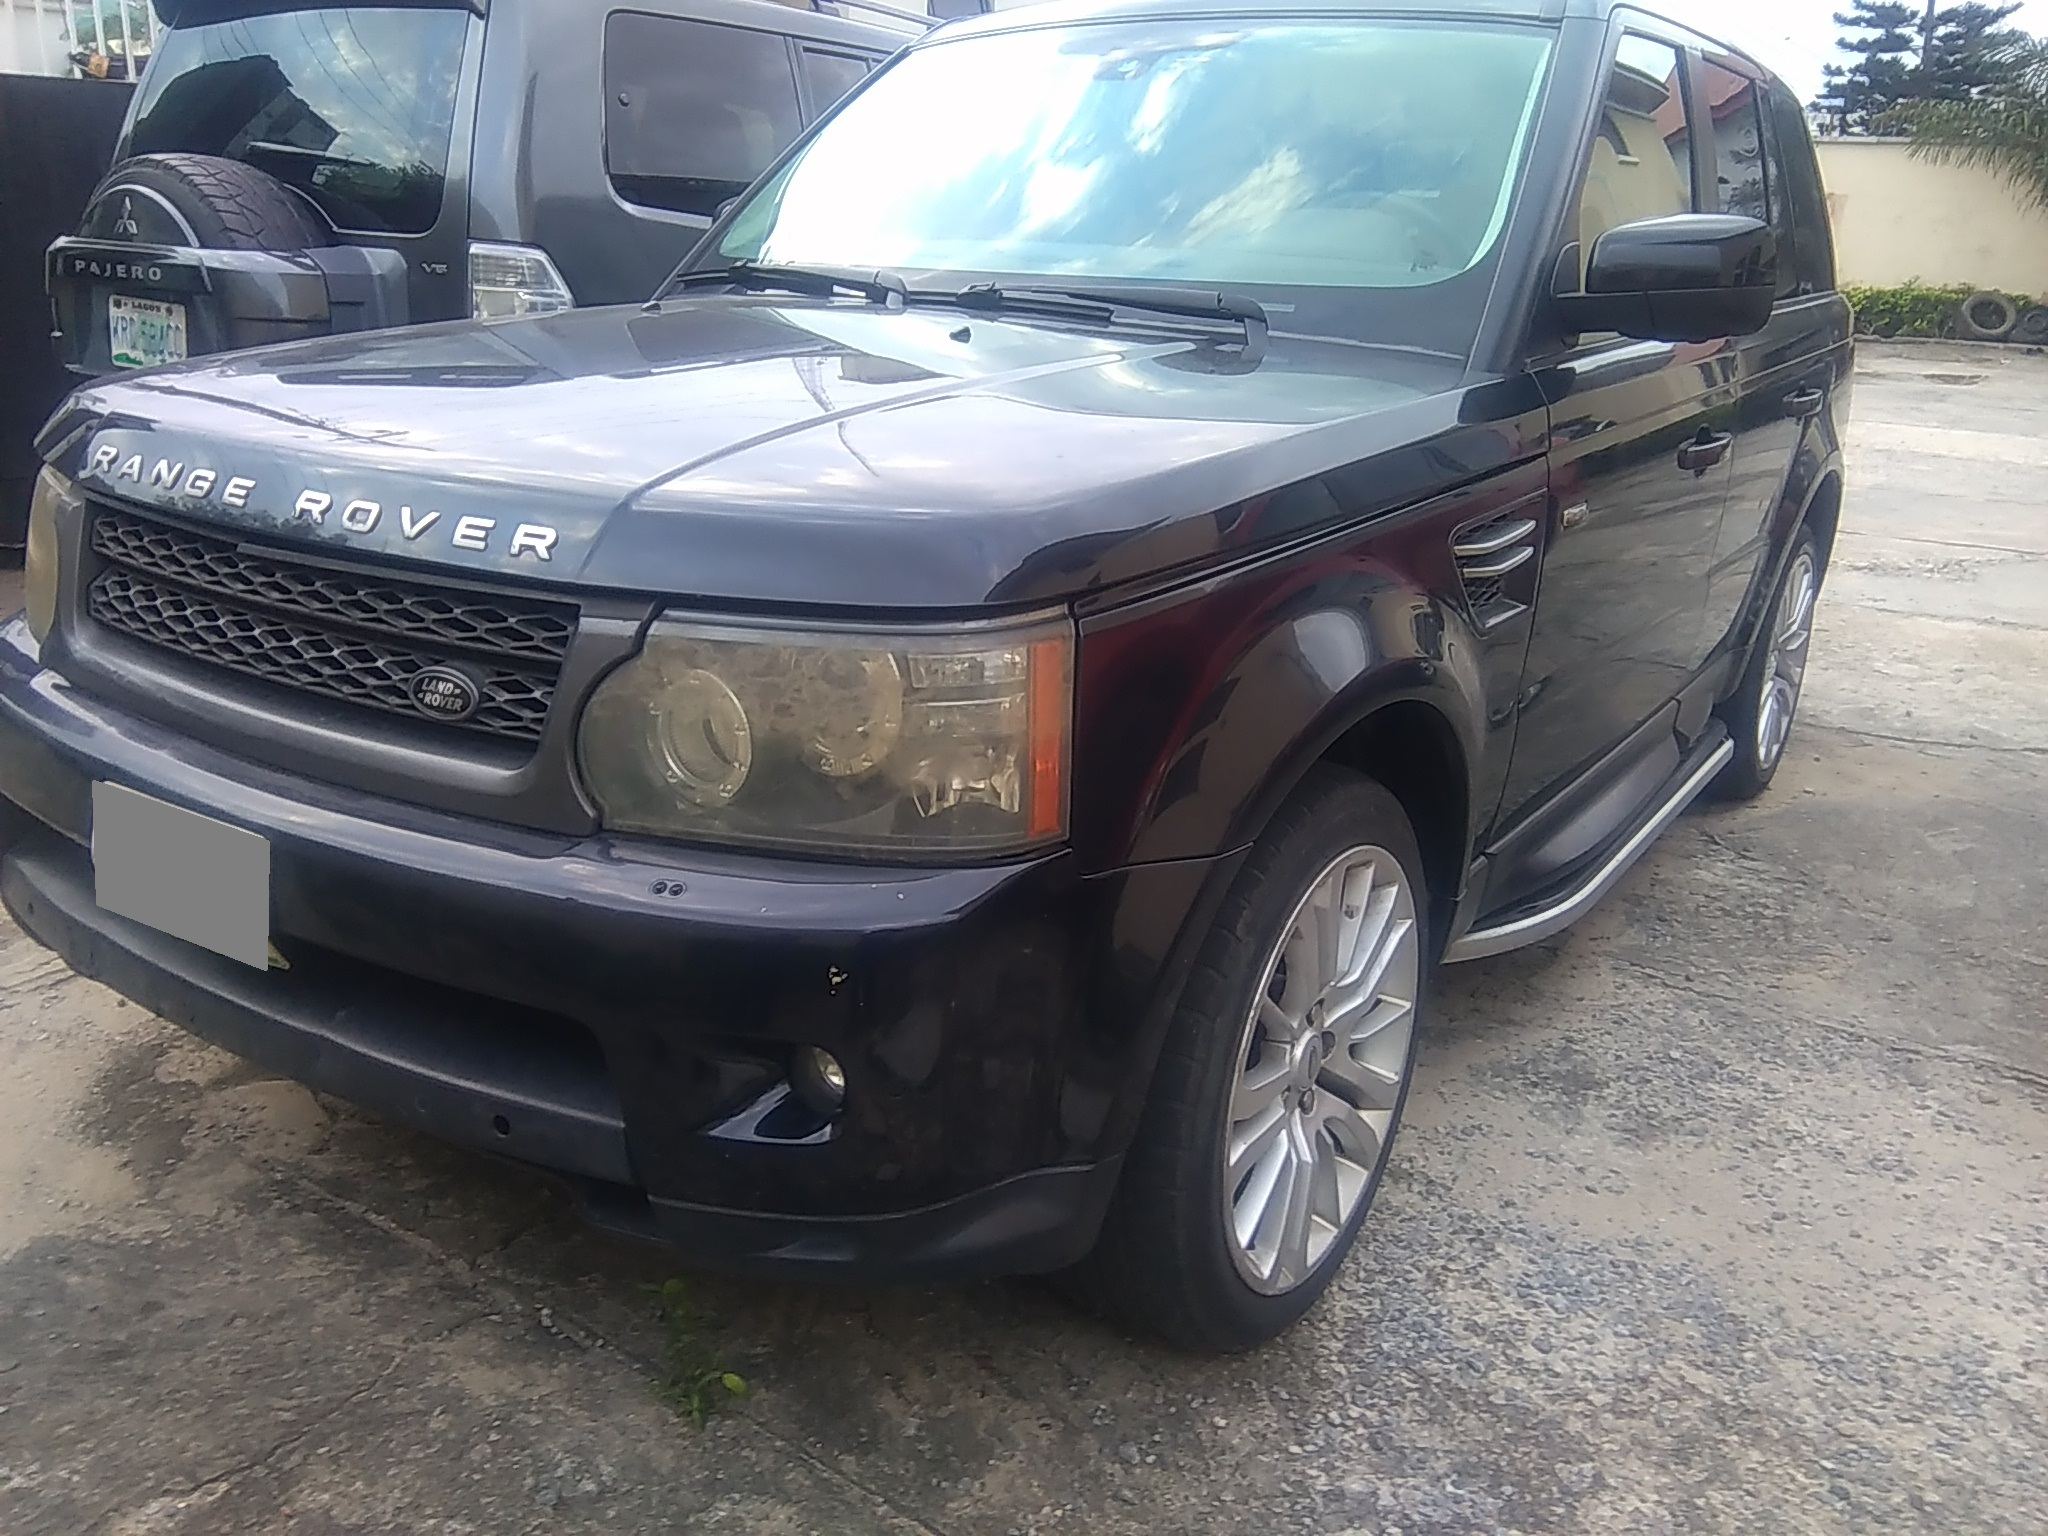 2011 Range Rover Sport Supercharged 1 User N5 5m 84 Services